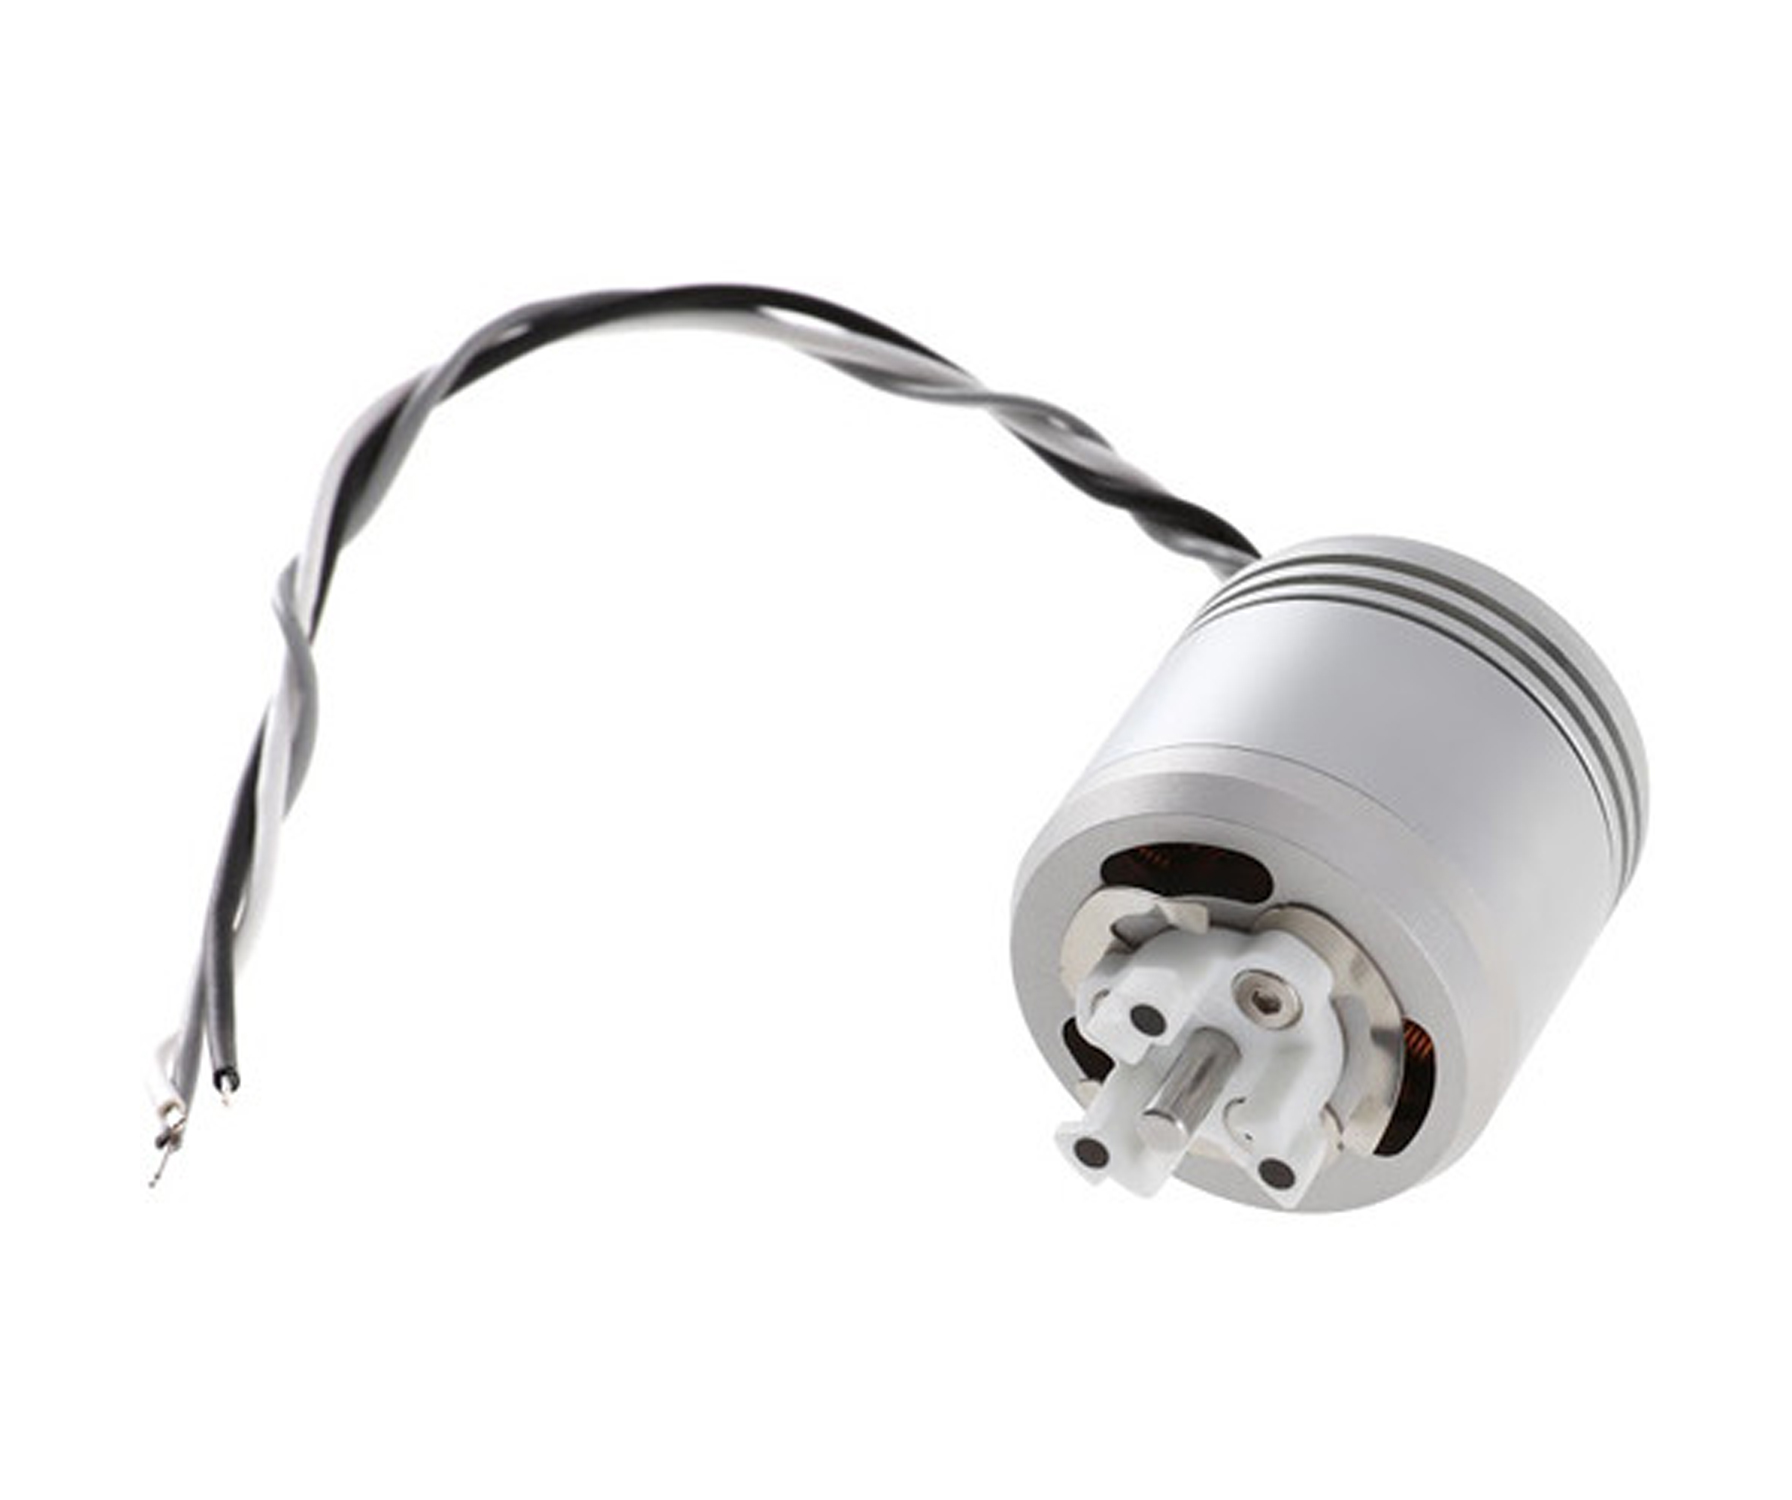 Amazon.com: Customer reviews: 2312A Motor (CCW) for DJI ...